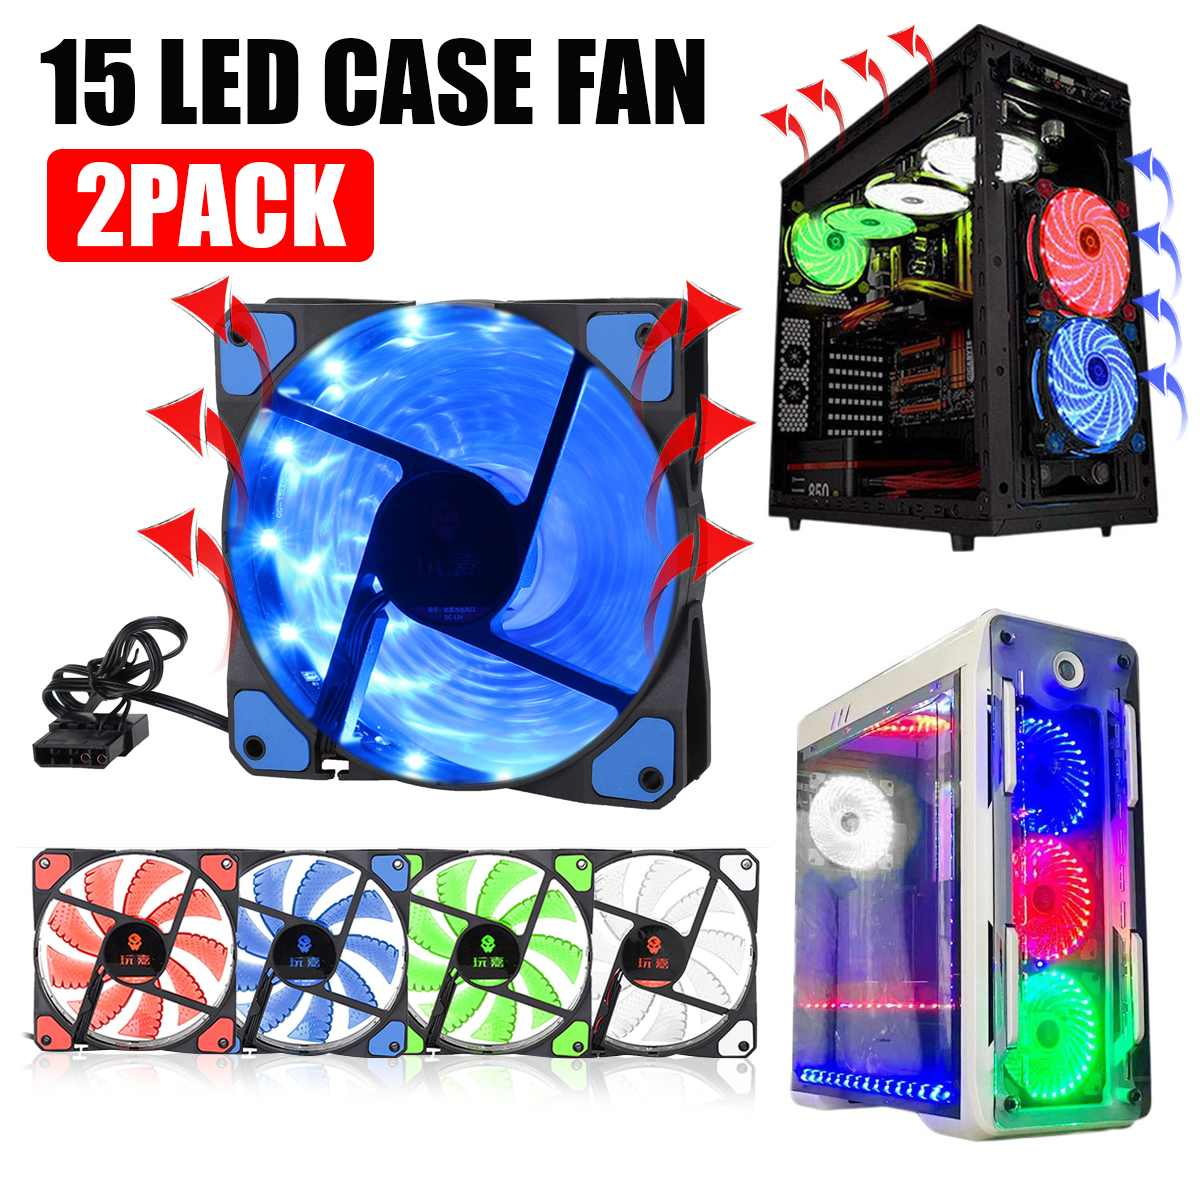 4 Color 120mm 15LED Light Neon PC Computer Case CPU Cooling Fan Mod Cooler 3 & 4Pin 12V 1500RPM Air Cooling image